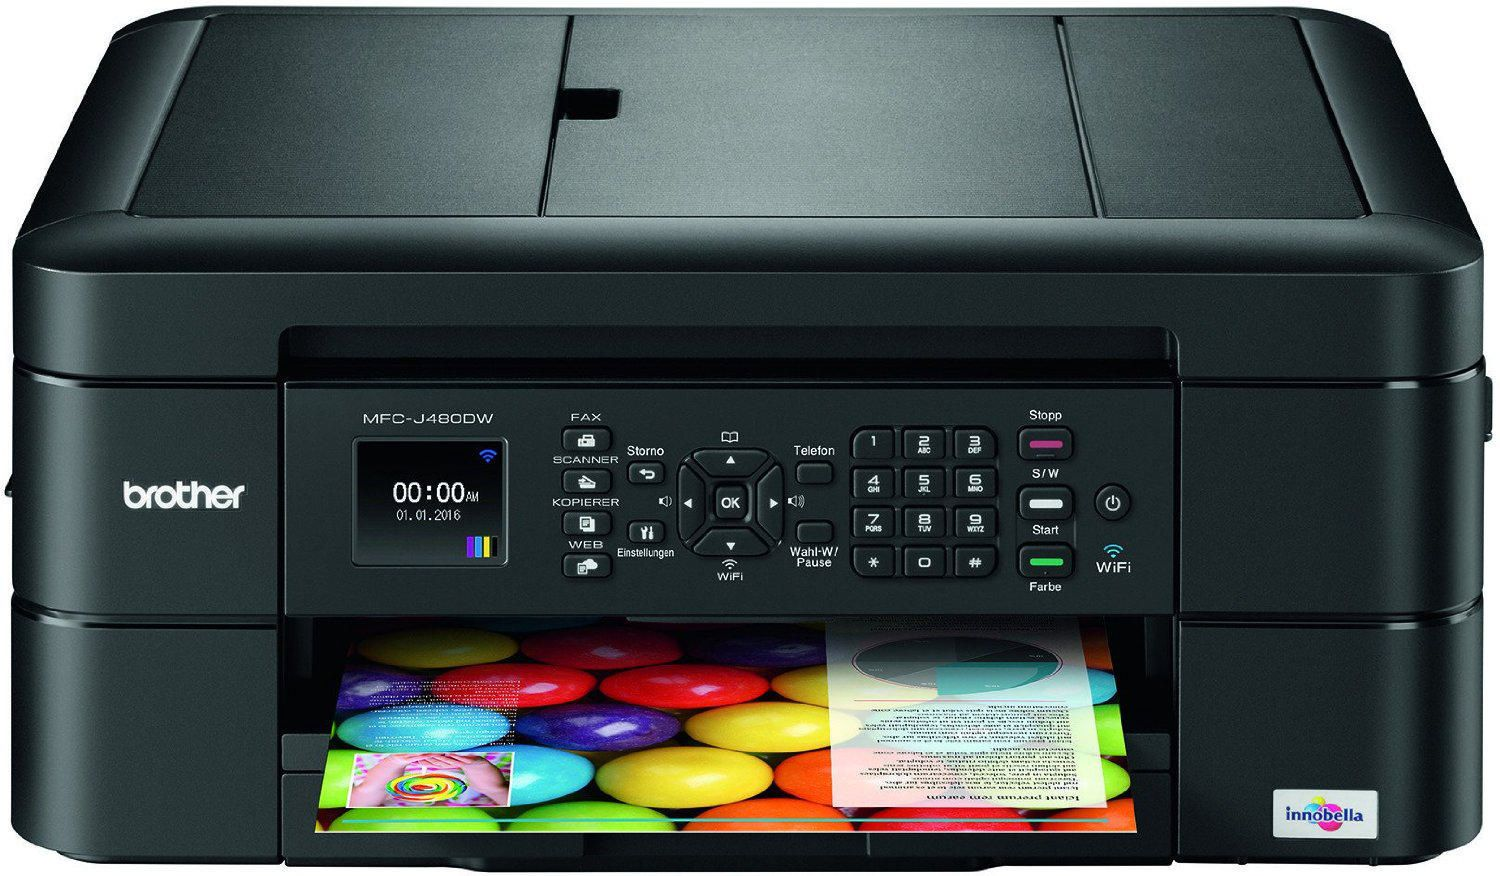 6 Steps to Connect your Offline Brother Printer on Windows 7